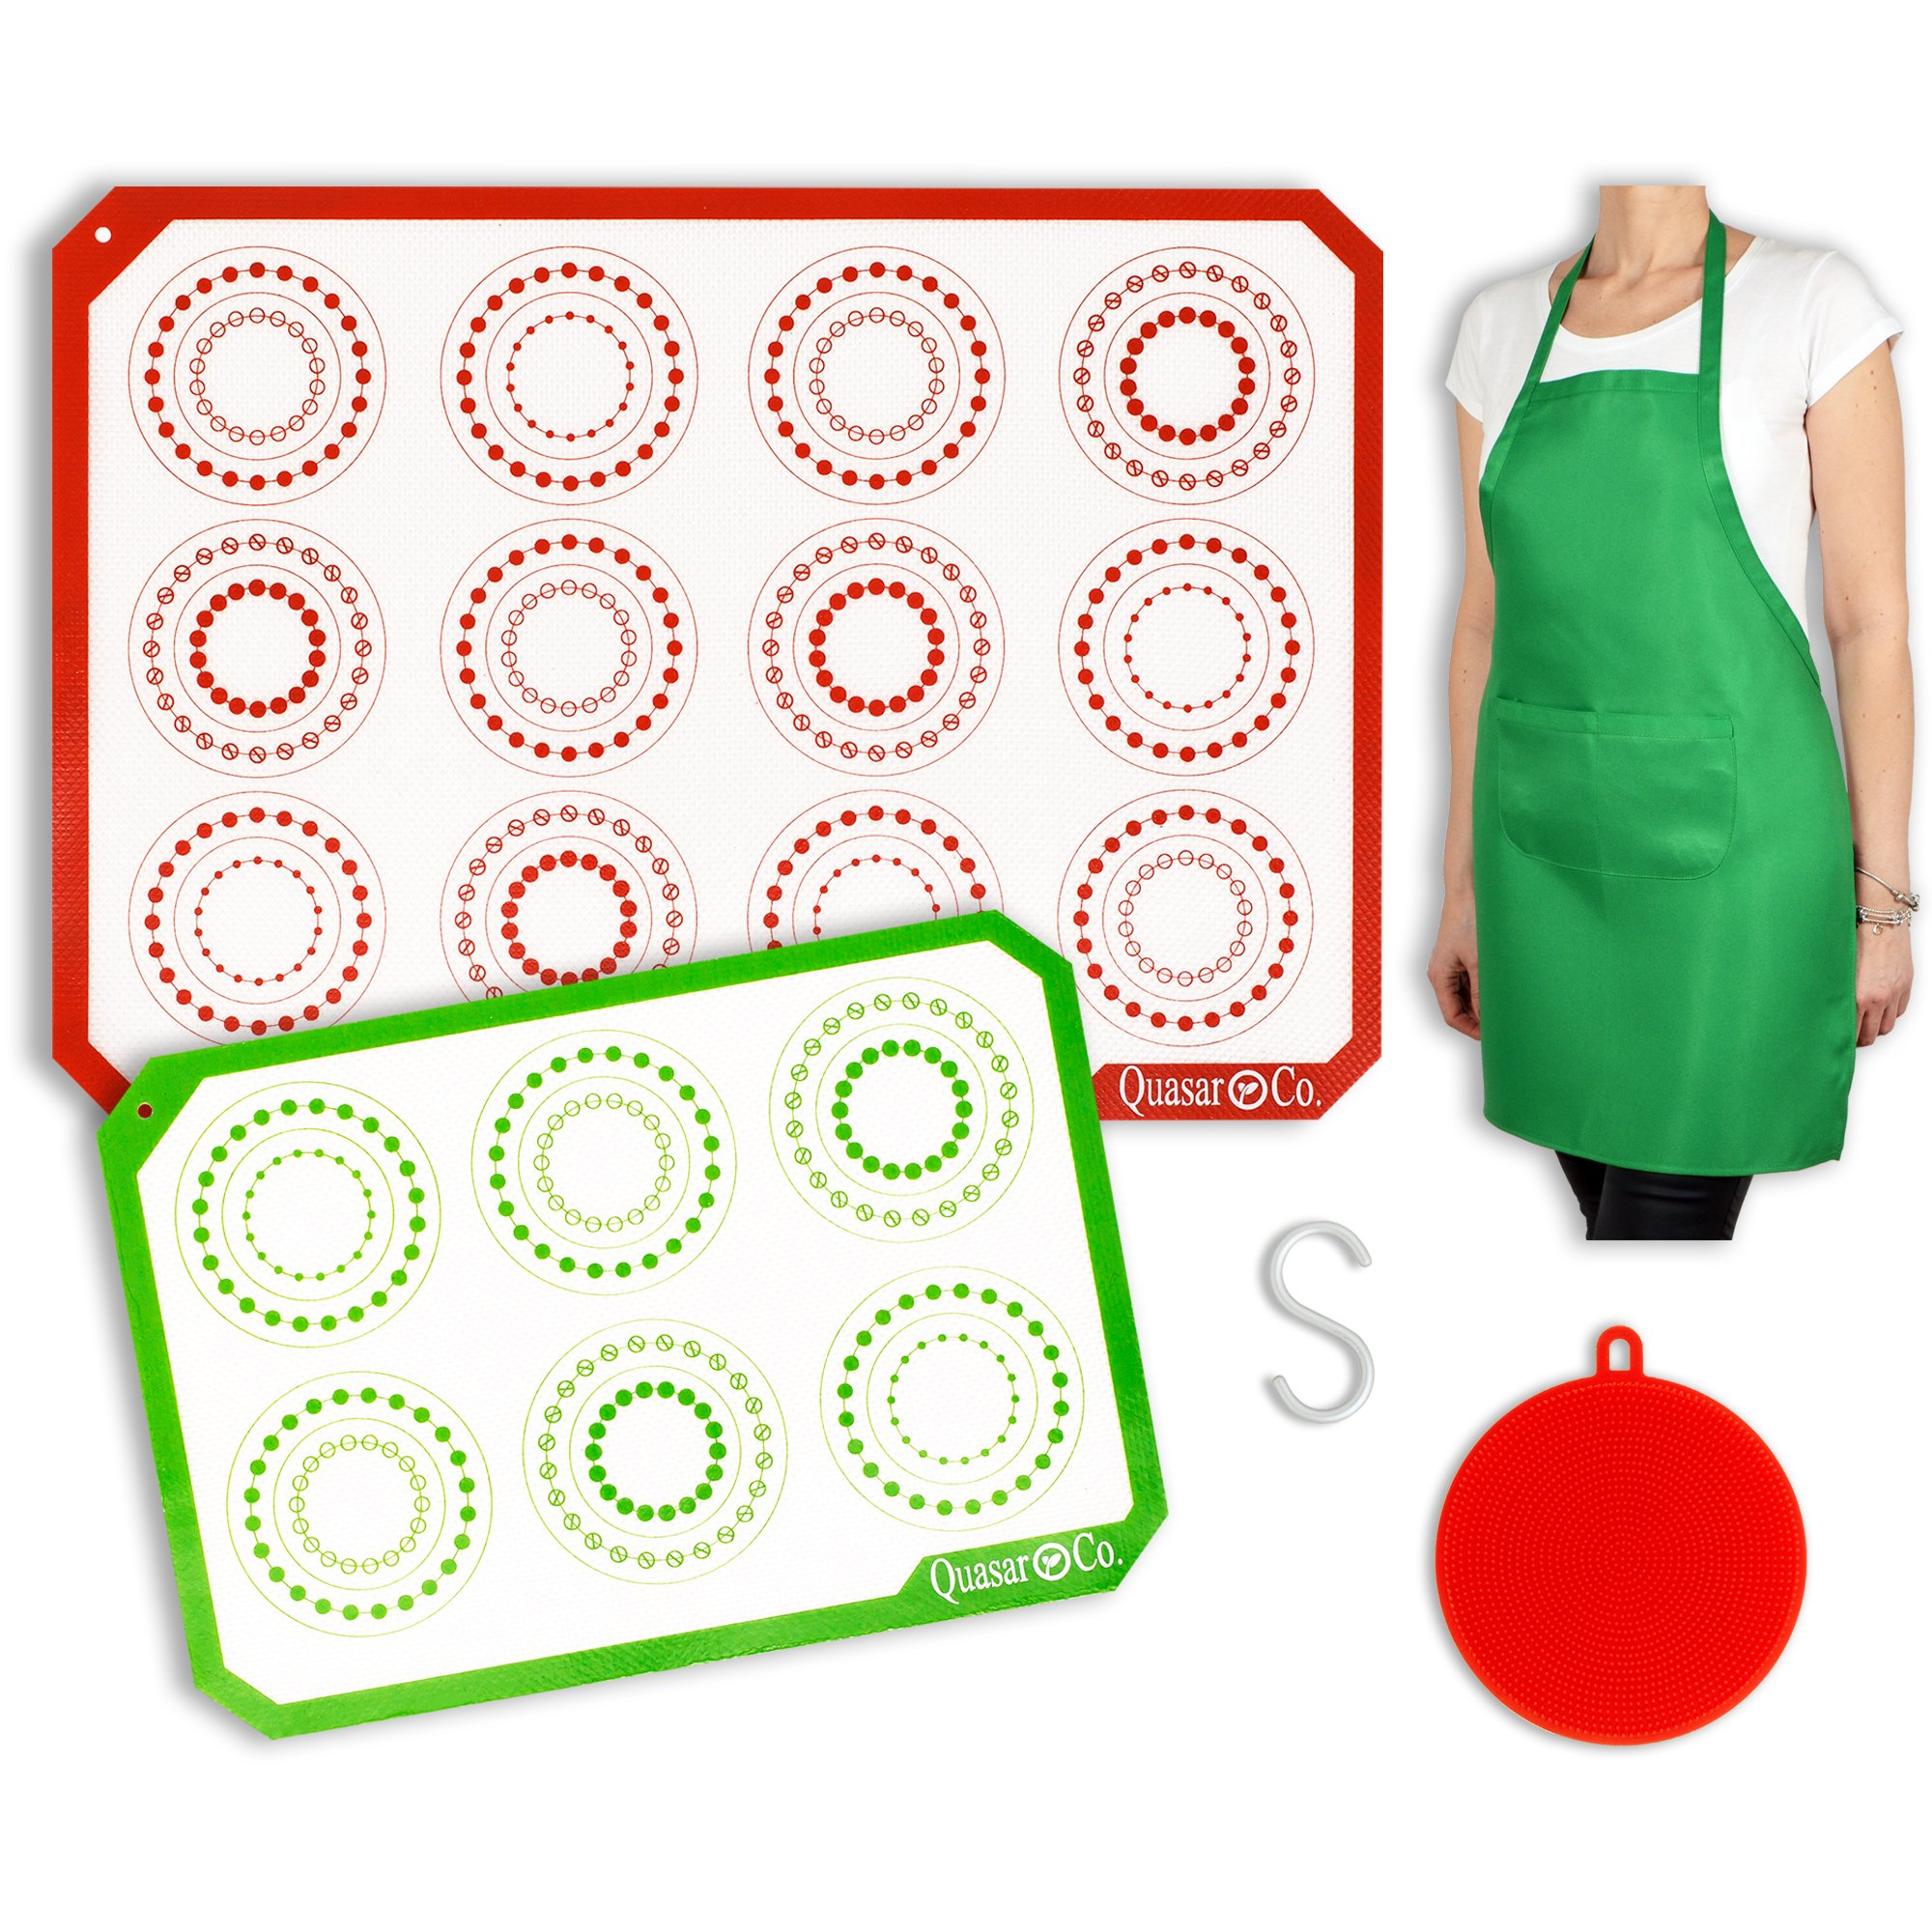 Silicone Baking Mat Set - Apron, Silicone Sponge and S Hook | 1 Half Sheet - 1 Quarter Sheet | Reusable Baking Mats Silicone | Professional Non Stick Cookie - Macaron Liners|Q4 by Quasar & Co